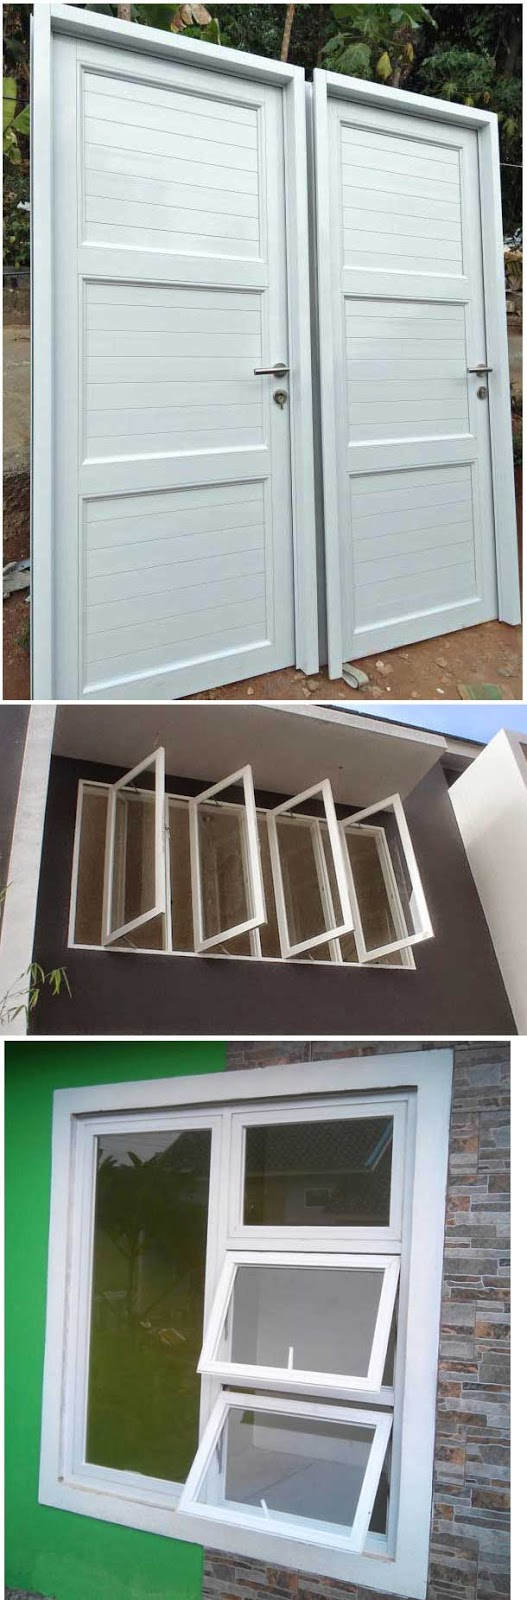 jendela swing, casement, rolling door, dll